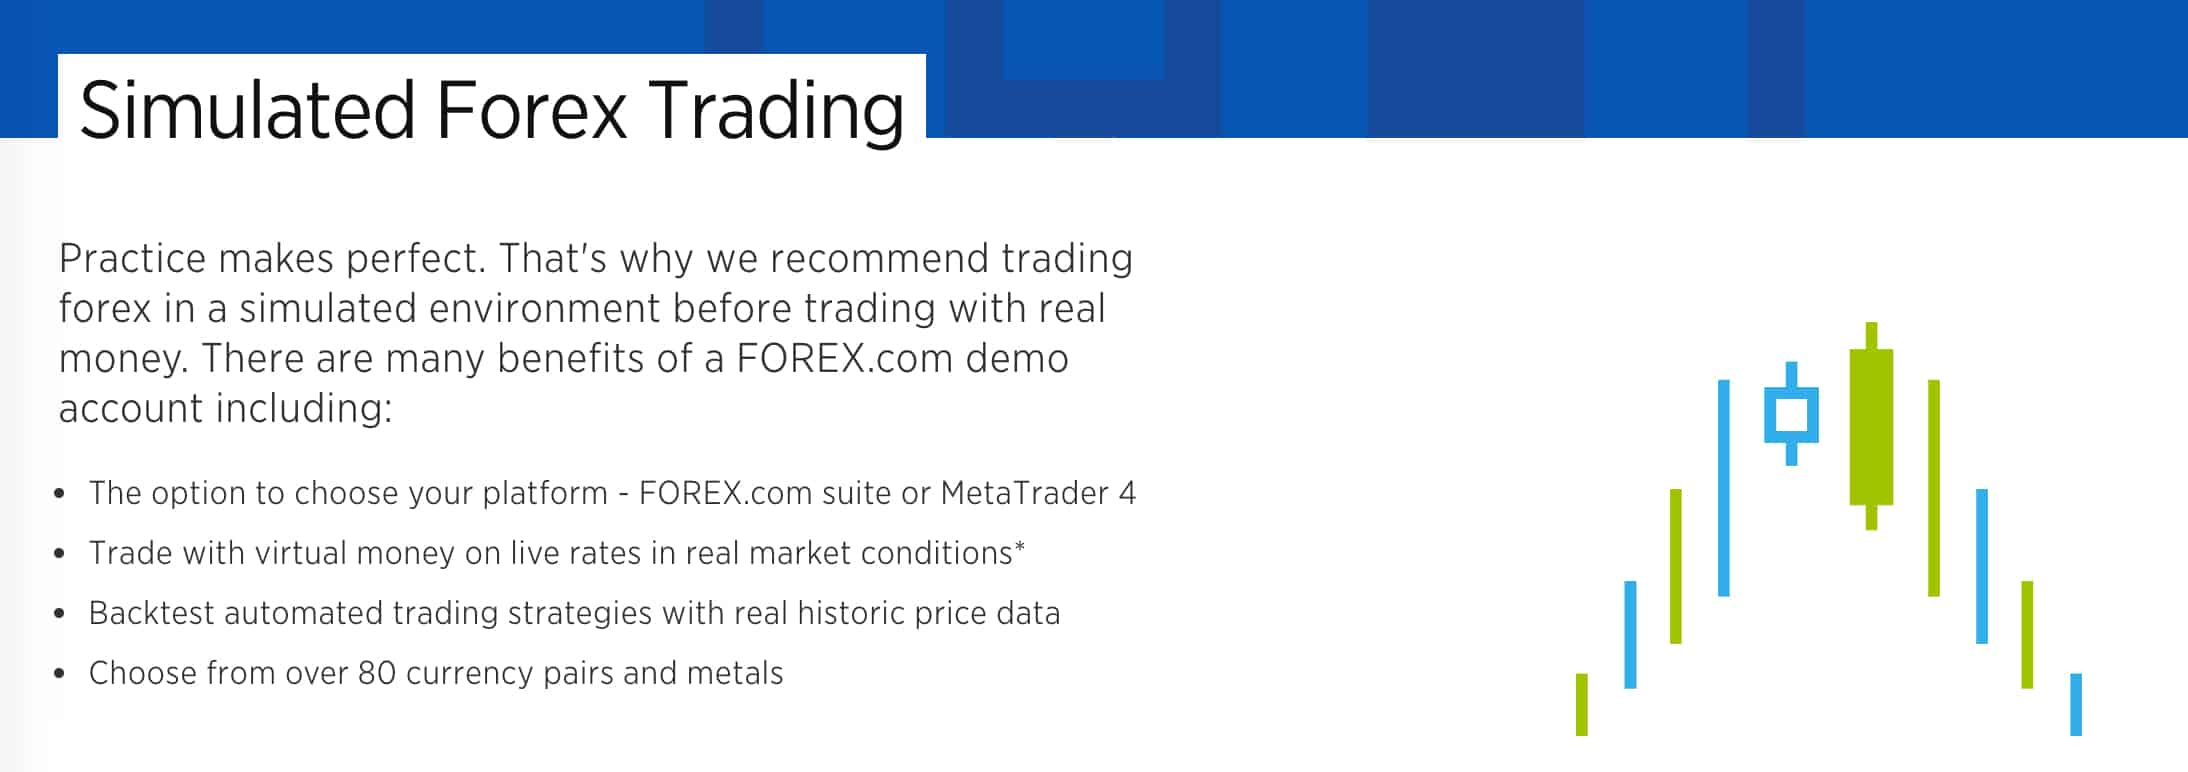 Forex.com beginner traders demo account